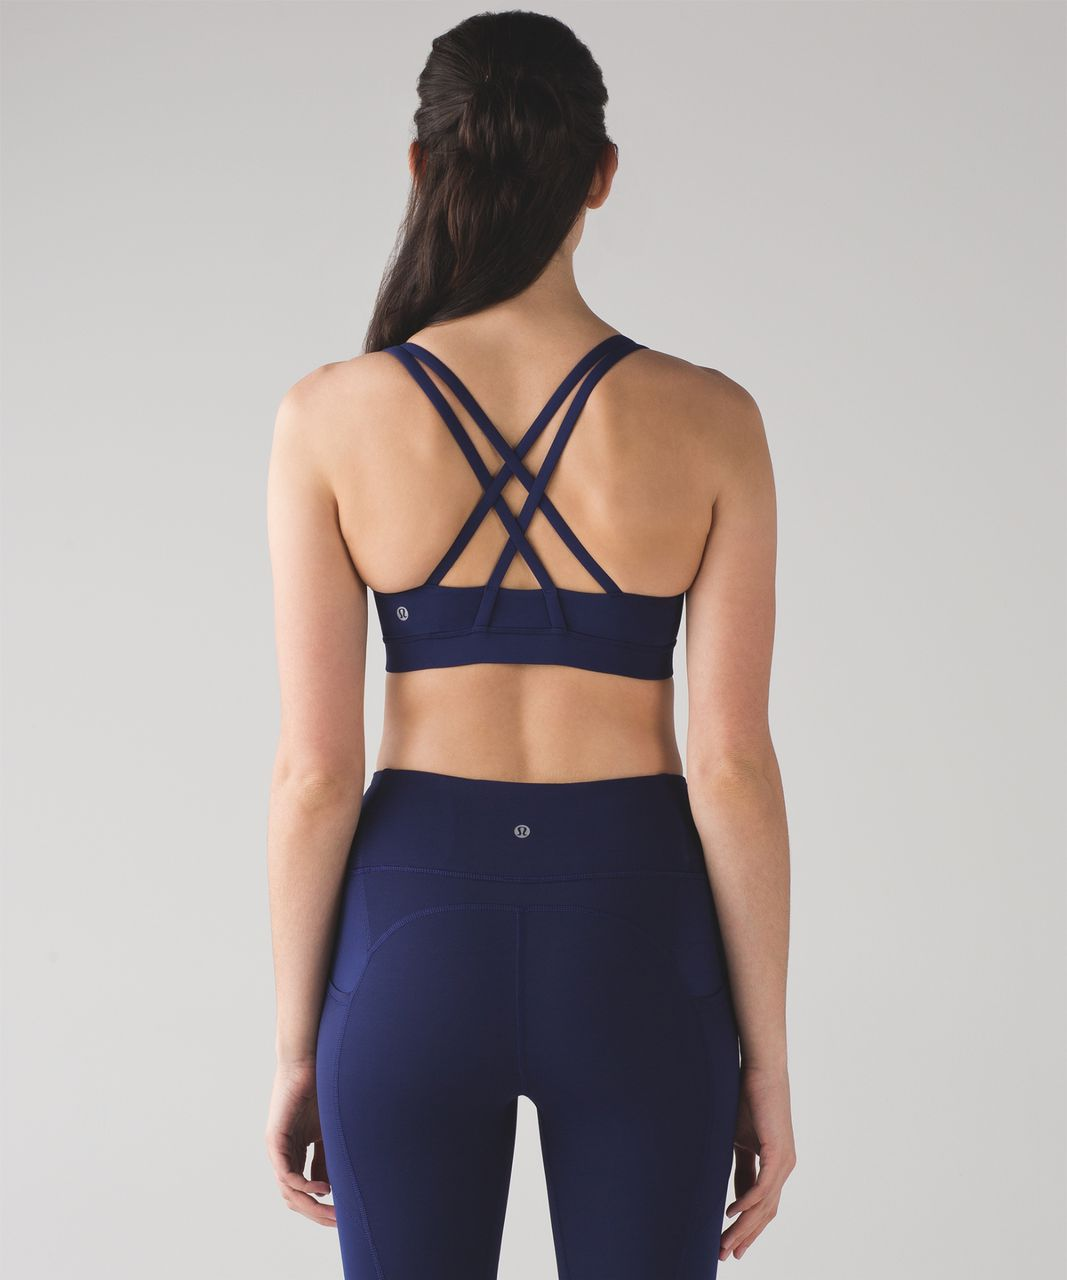 Lululemon Energy Bra - Hero Blue